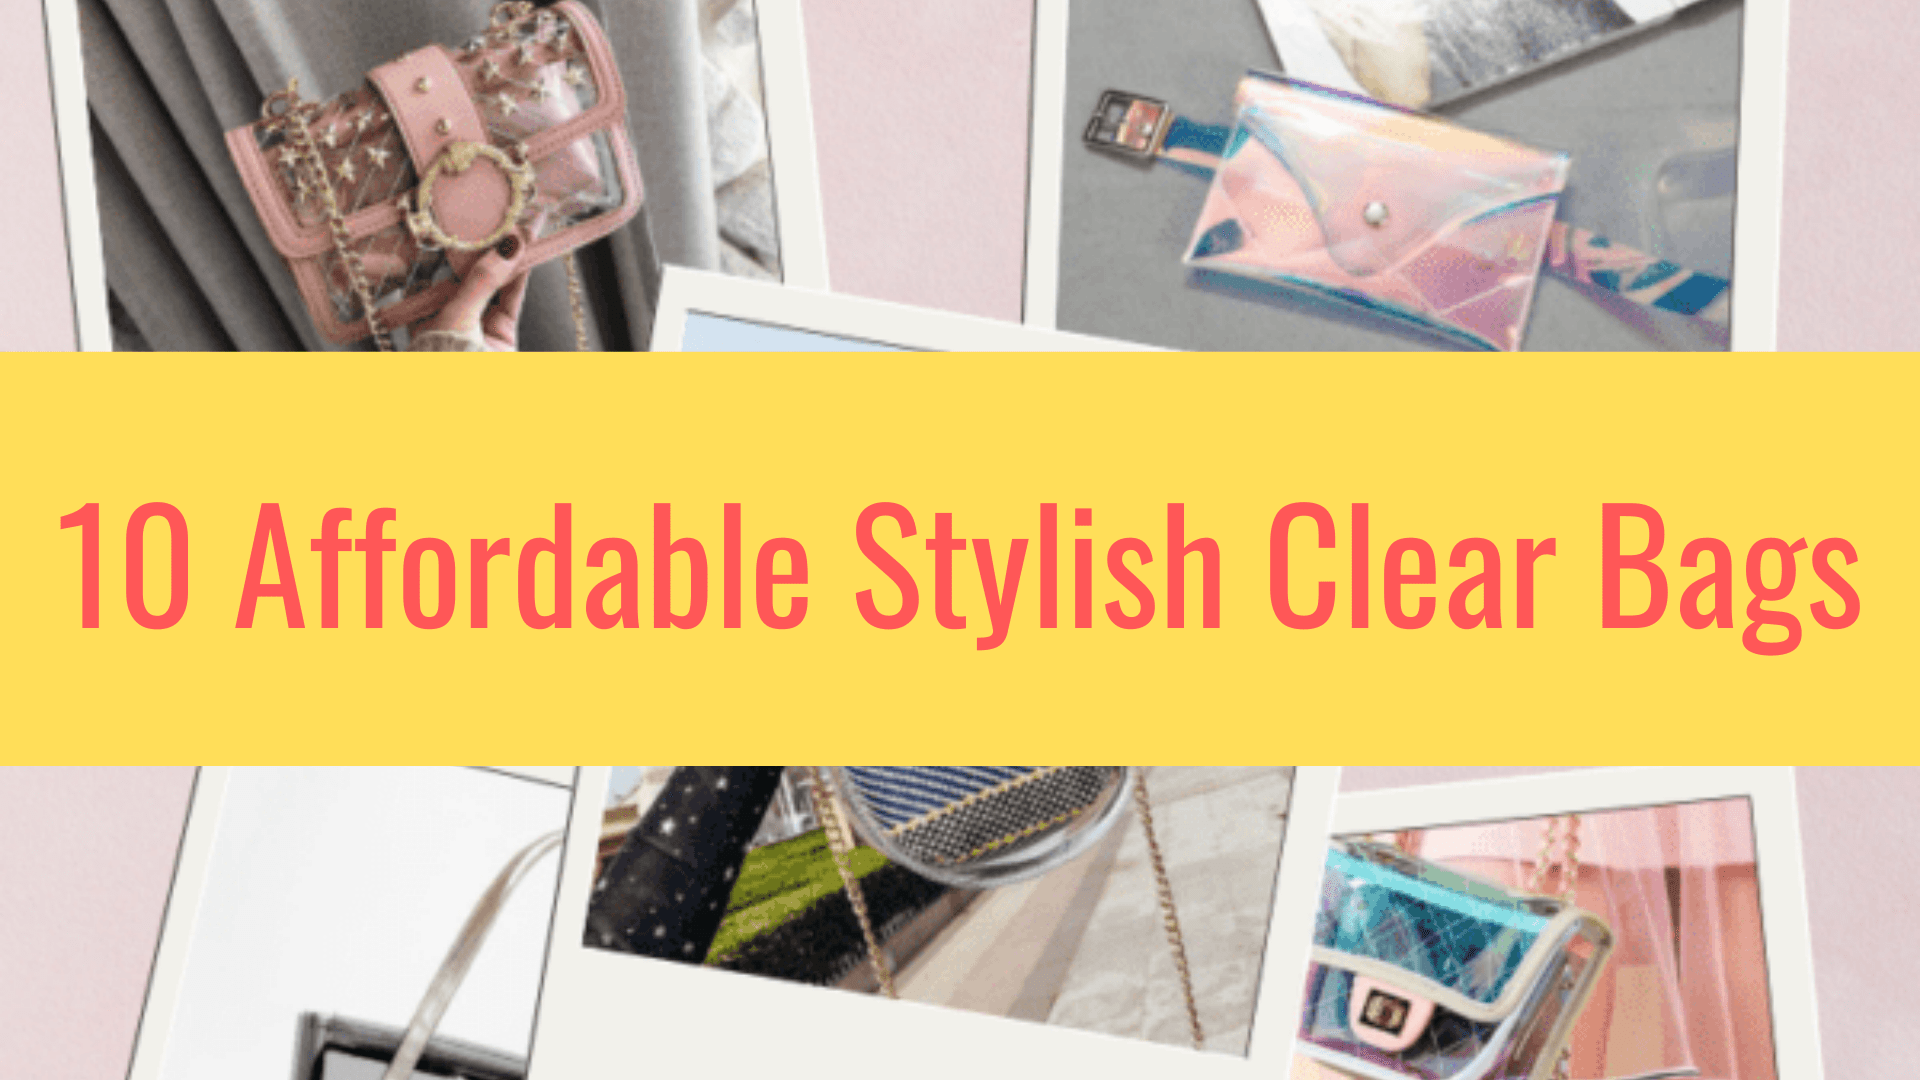 10 Affordable Stylish Clear Bags 1